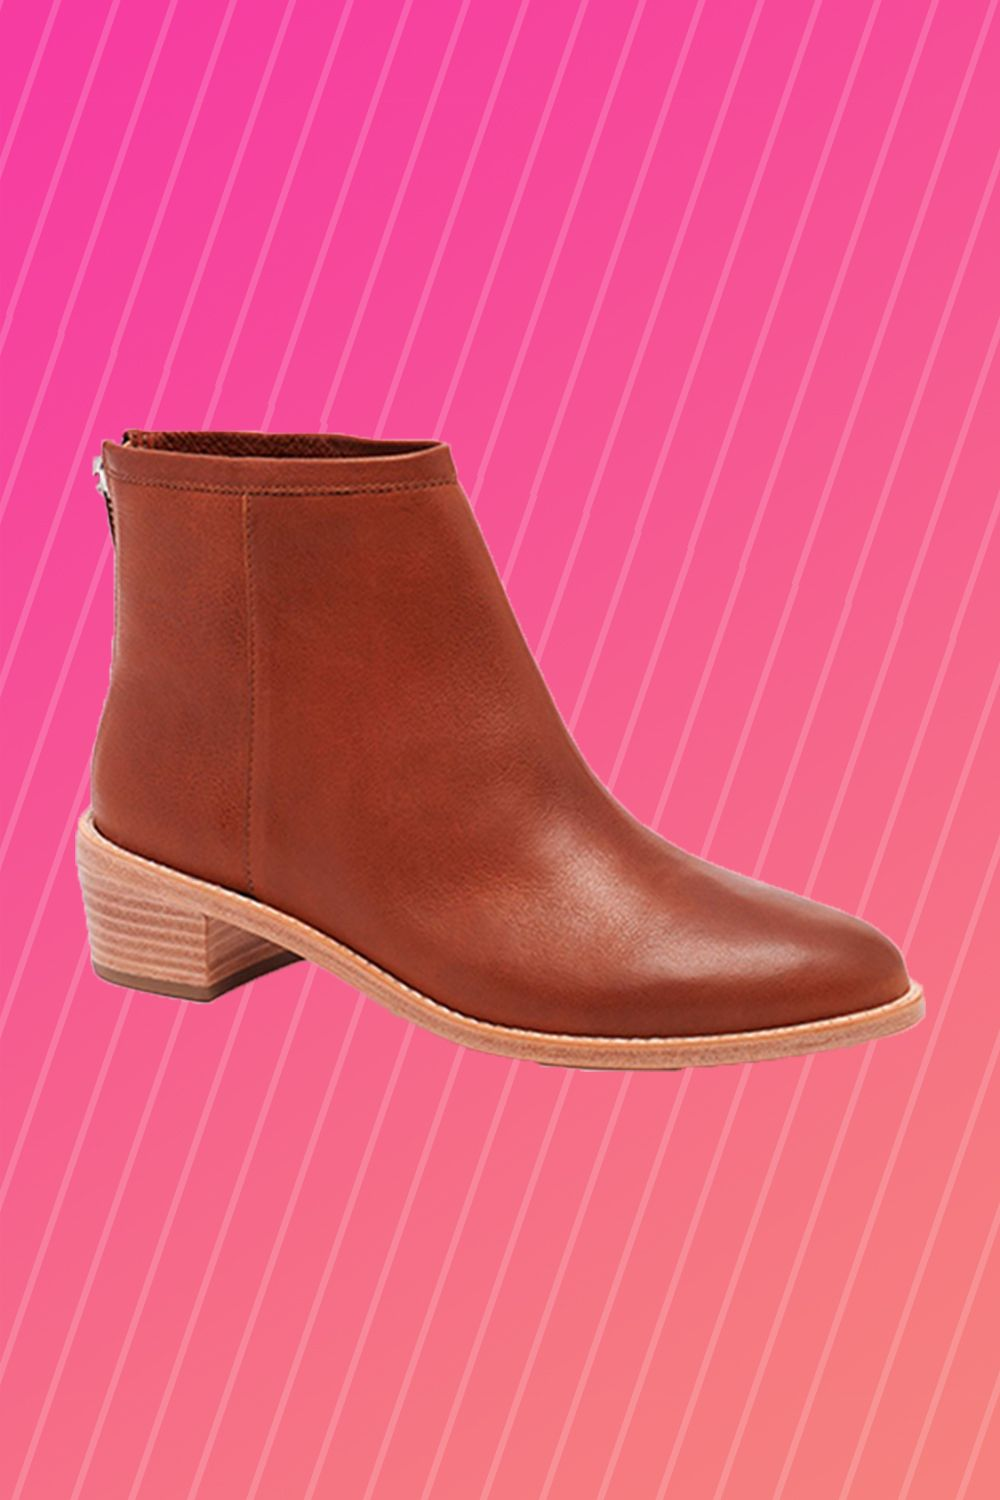 """<p>Ankle boots are a fall favorite for a reason. They pair perfectly with skinny jeans, cropped jeans, and, if you go for a pair with a more pointed toe, even flares. Seriously, they can do it all!</p><p><em><a href=""""http://www.loefflerrandall.com/felix-ac-cog-bootie-12.html"""" target=""""_blank"""">Felix Ankle Bootie</a>, LOEFFLER RANDALL, $395</em></p>"""